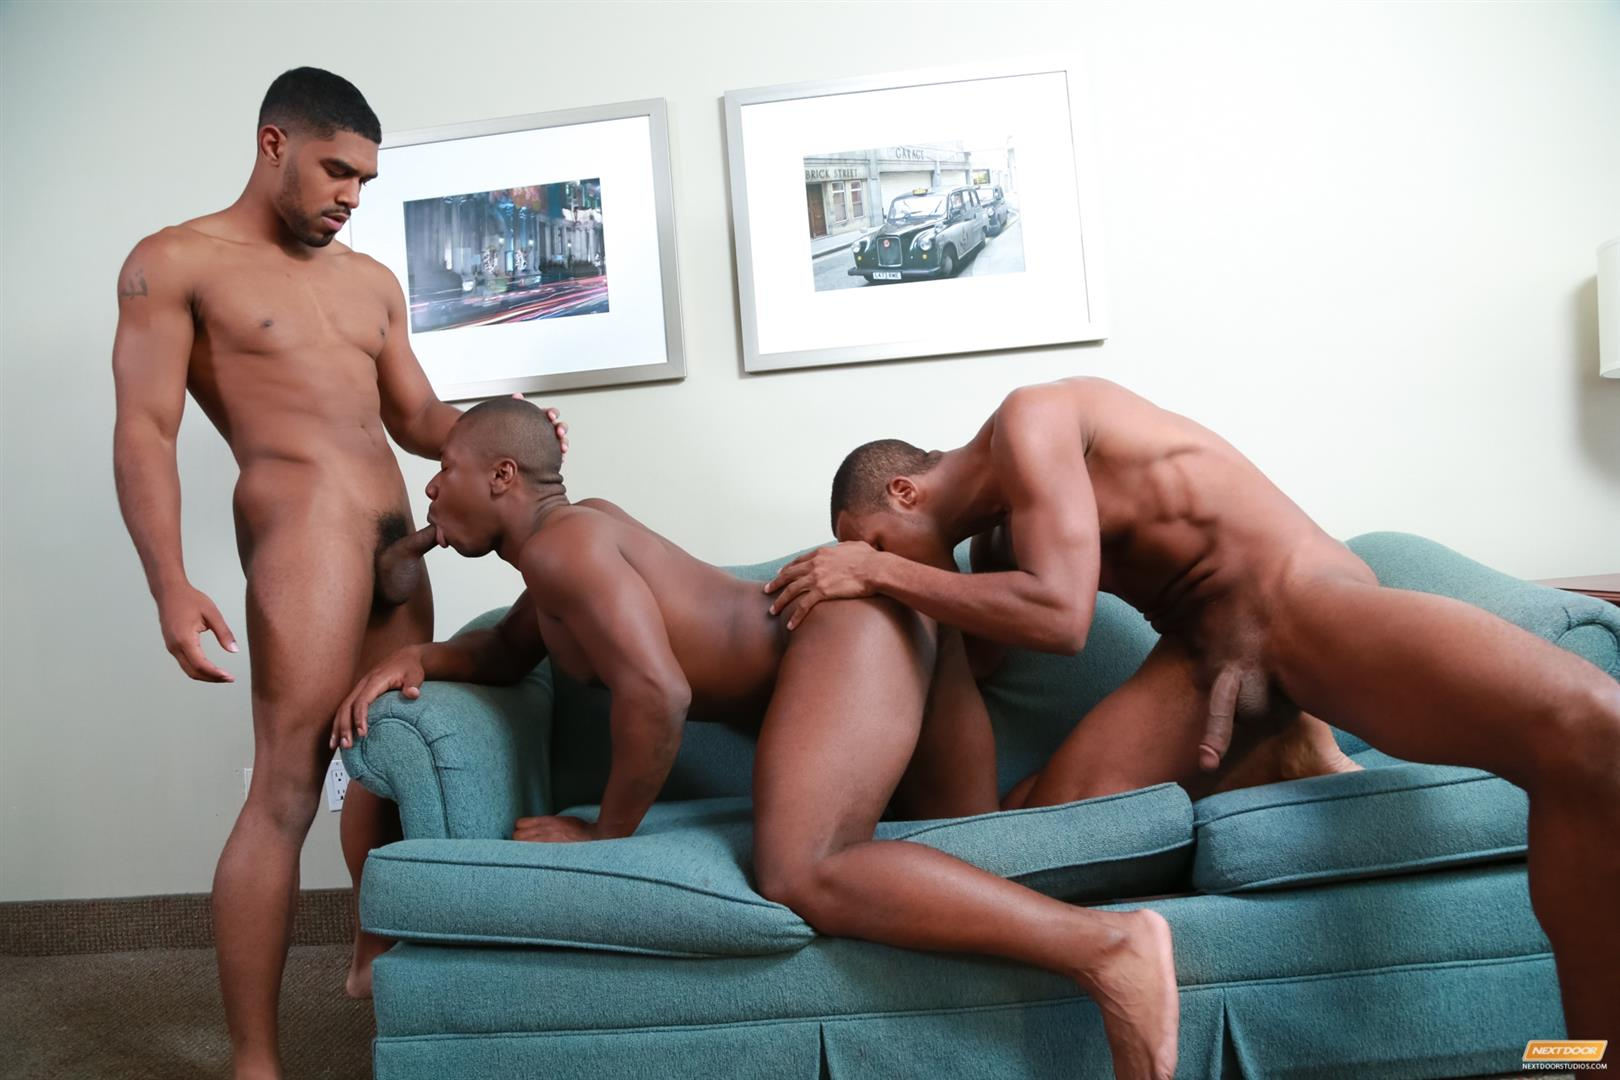 Next Door Ebony Damian Brooks and XL and Andre Donovan Black Naked Men Fucking Amateur Gay Porn 15 Three Naked Black Men, Three Big Black Cocks, One Juicy Booty